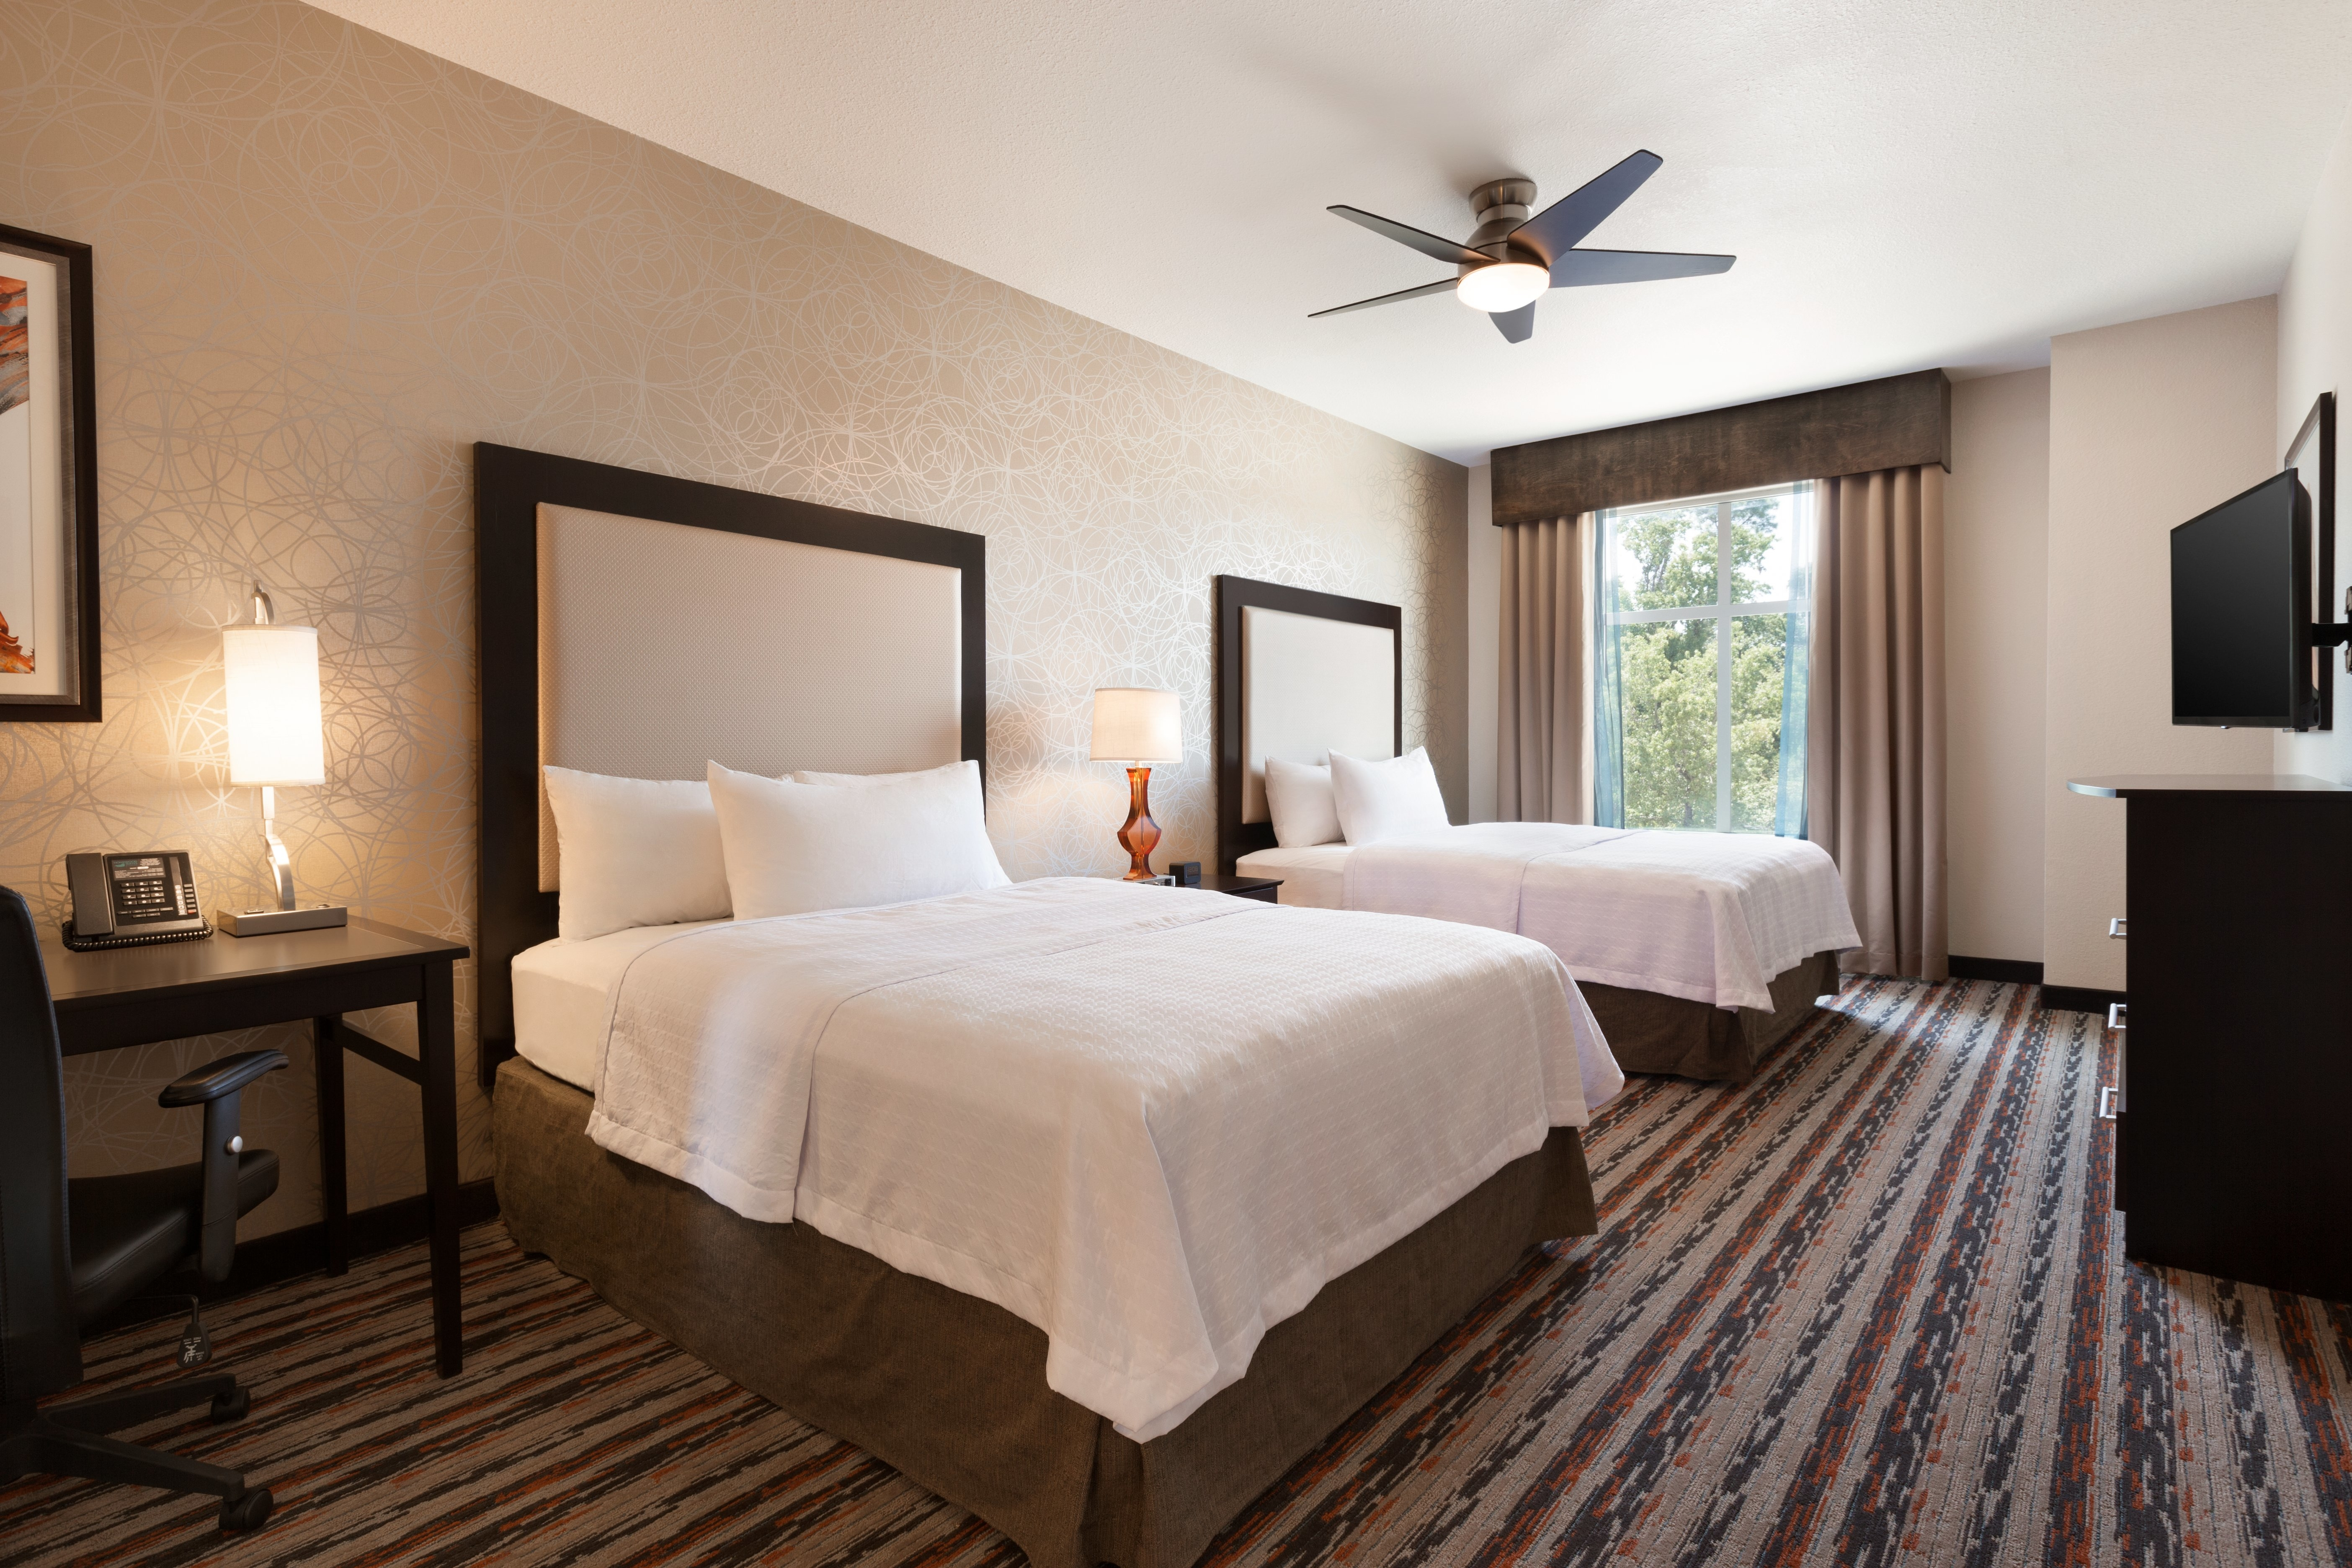 Homewood Suites by Hilton North Houston/Spring image 2